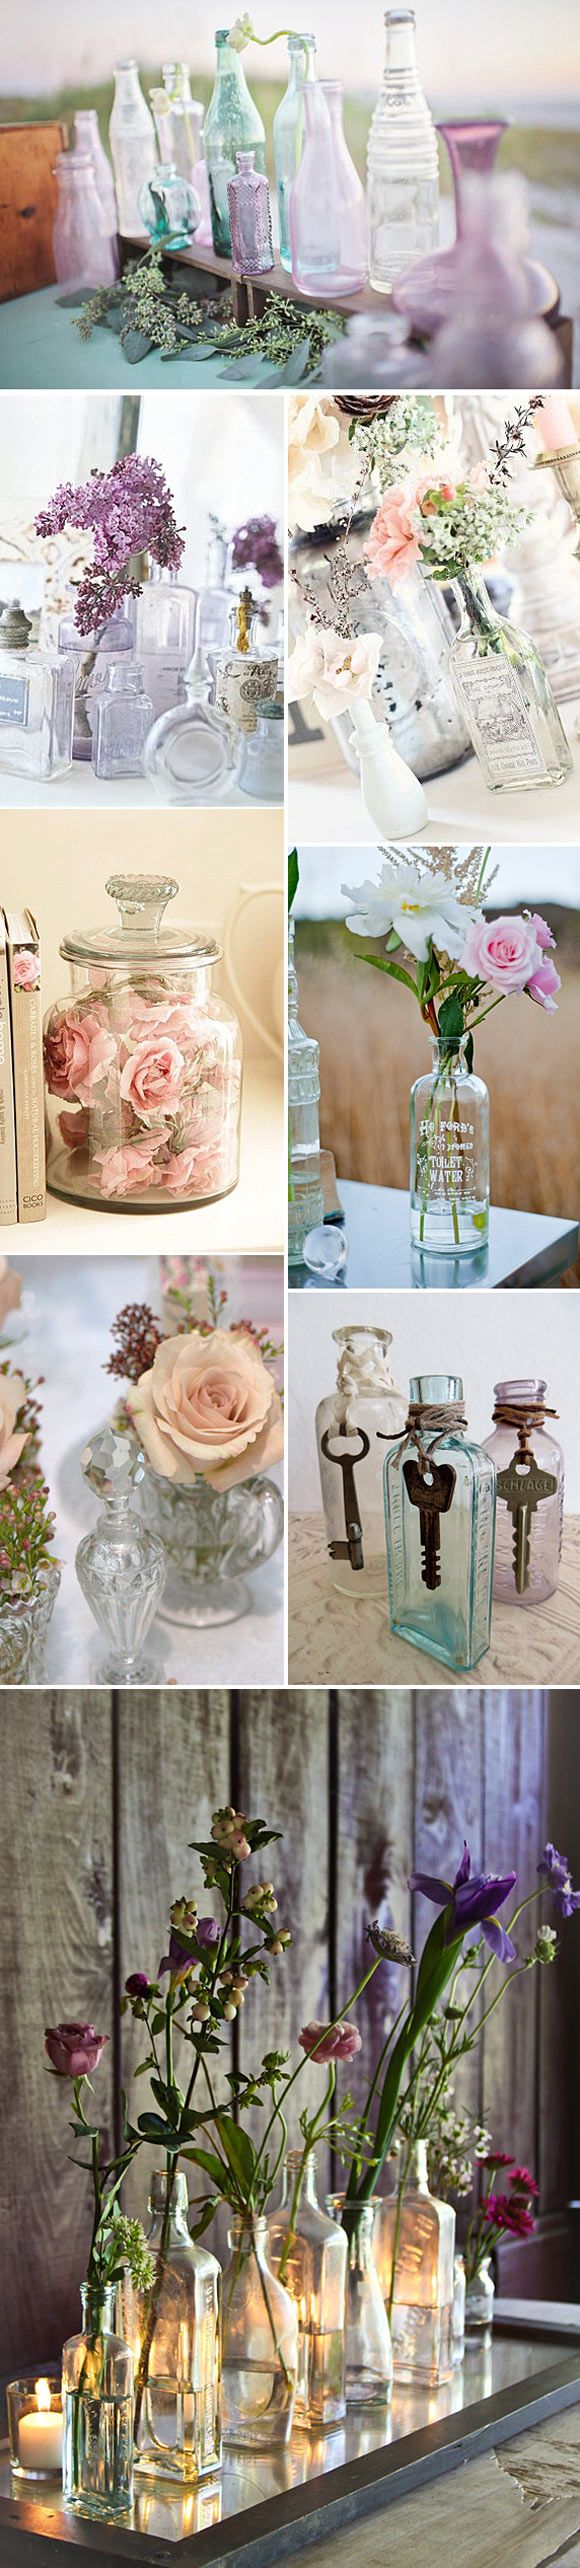 17 mejores ideas sobre arreglos florales vintage en for Ideas y mas decoracion